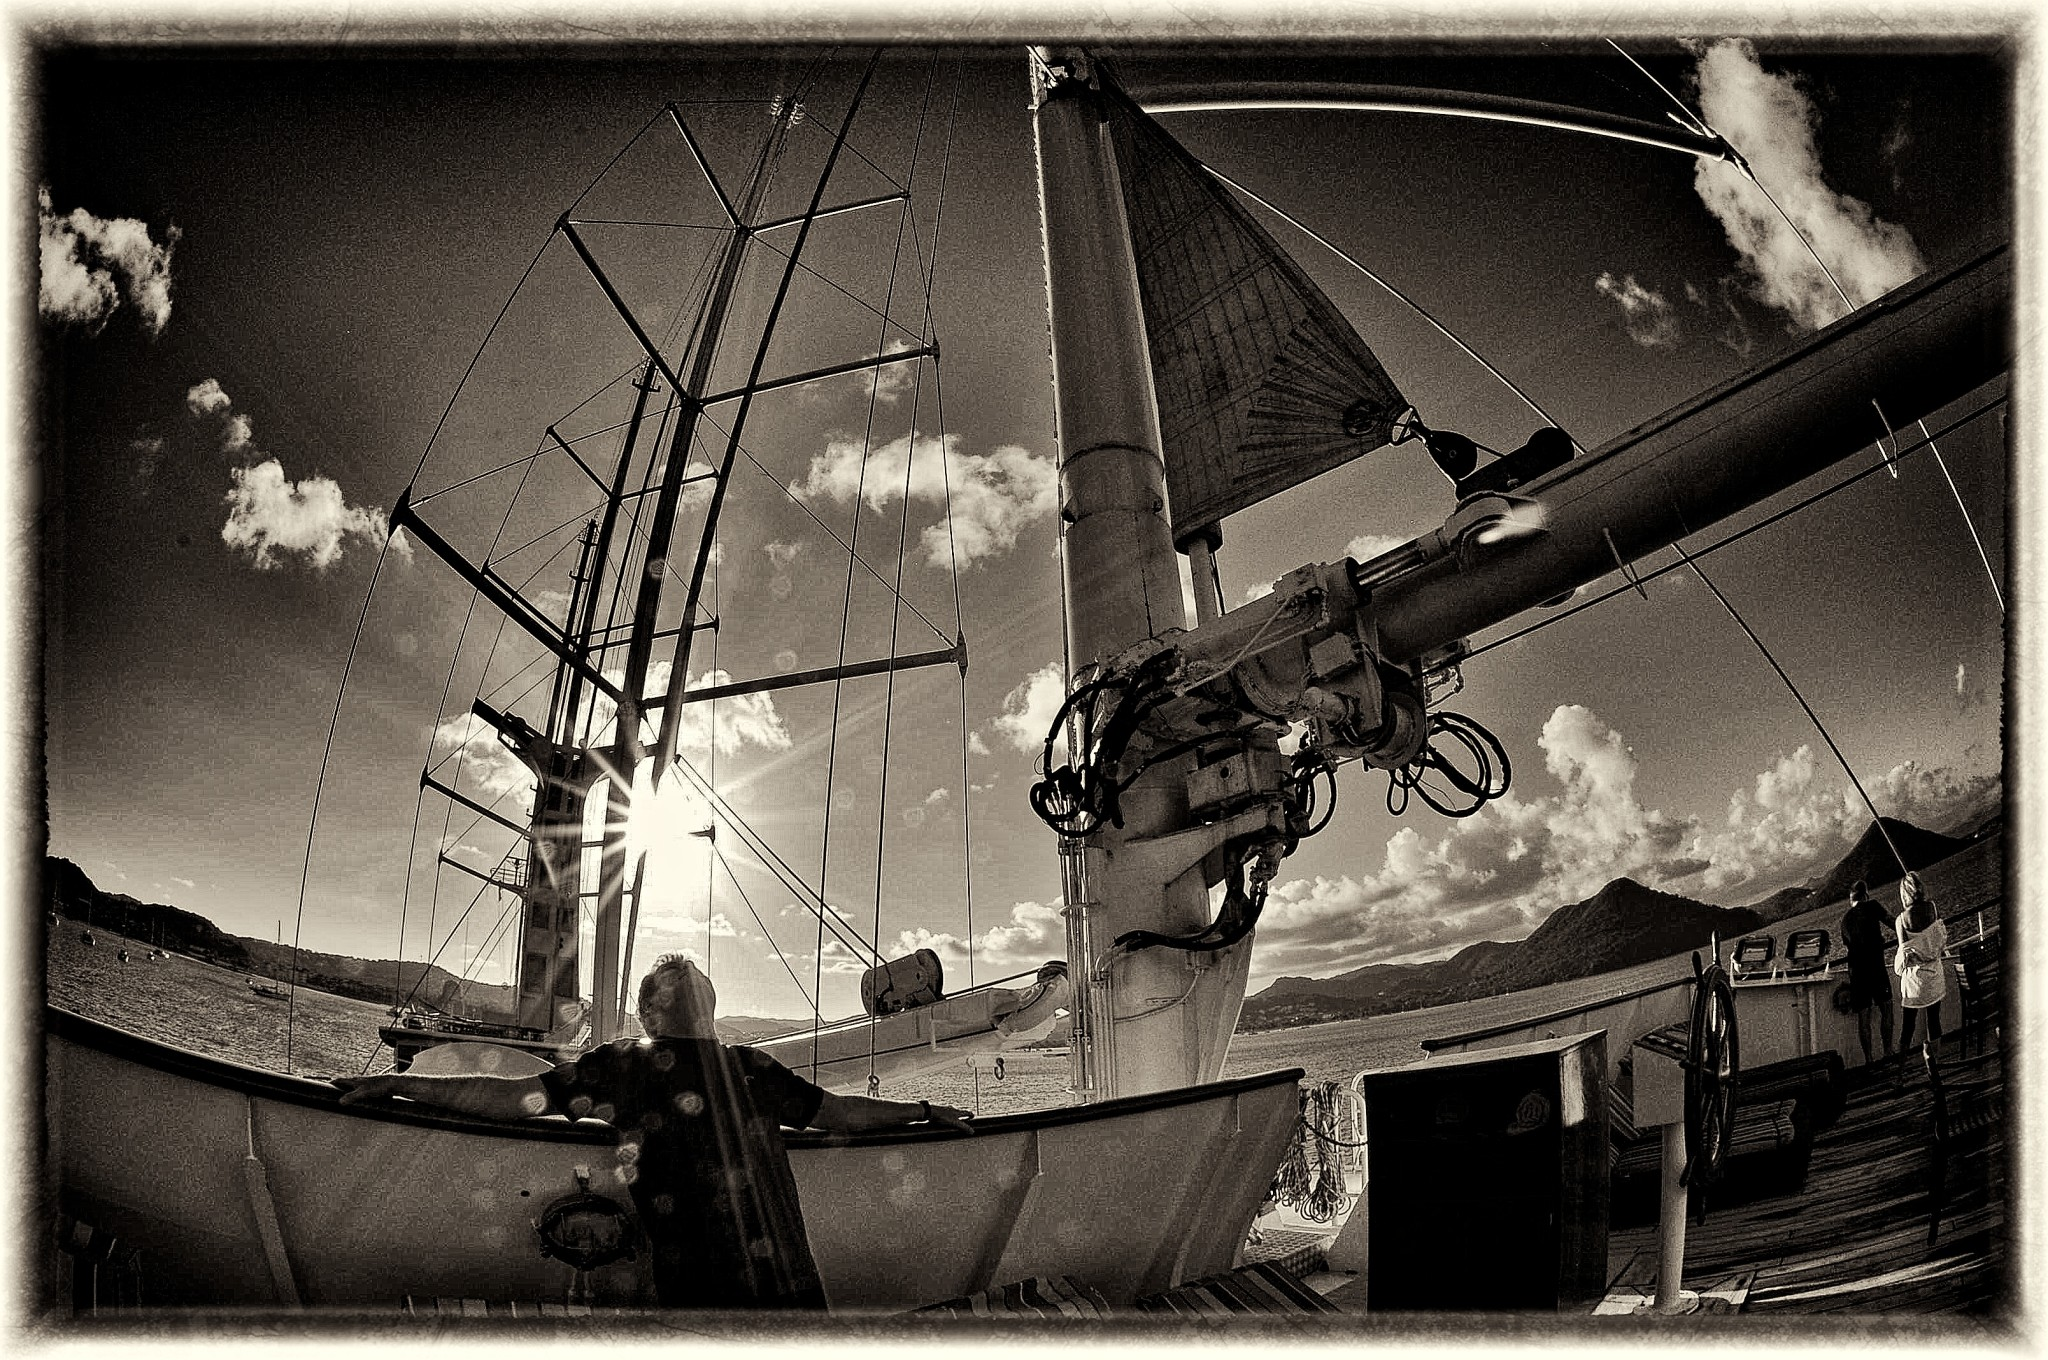 Sailing the Windward Islands in the Caribbean